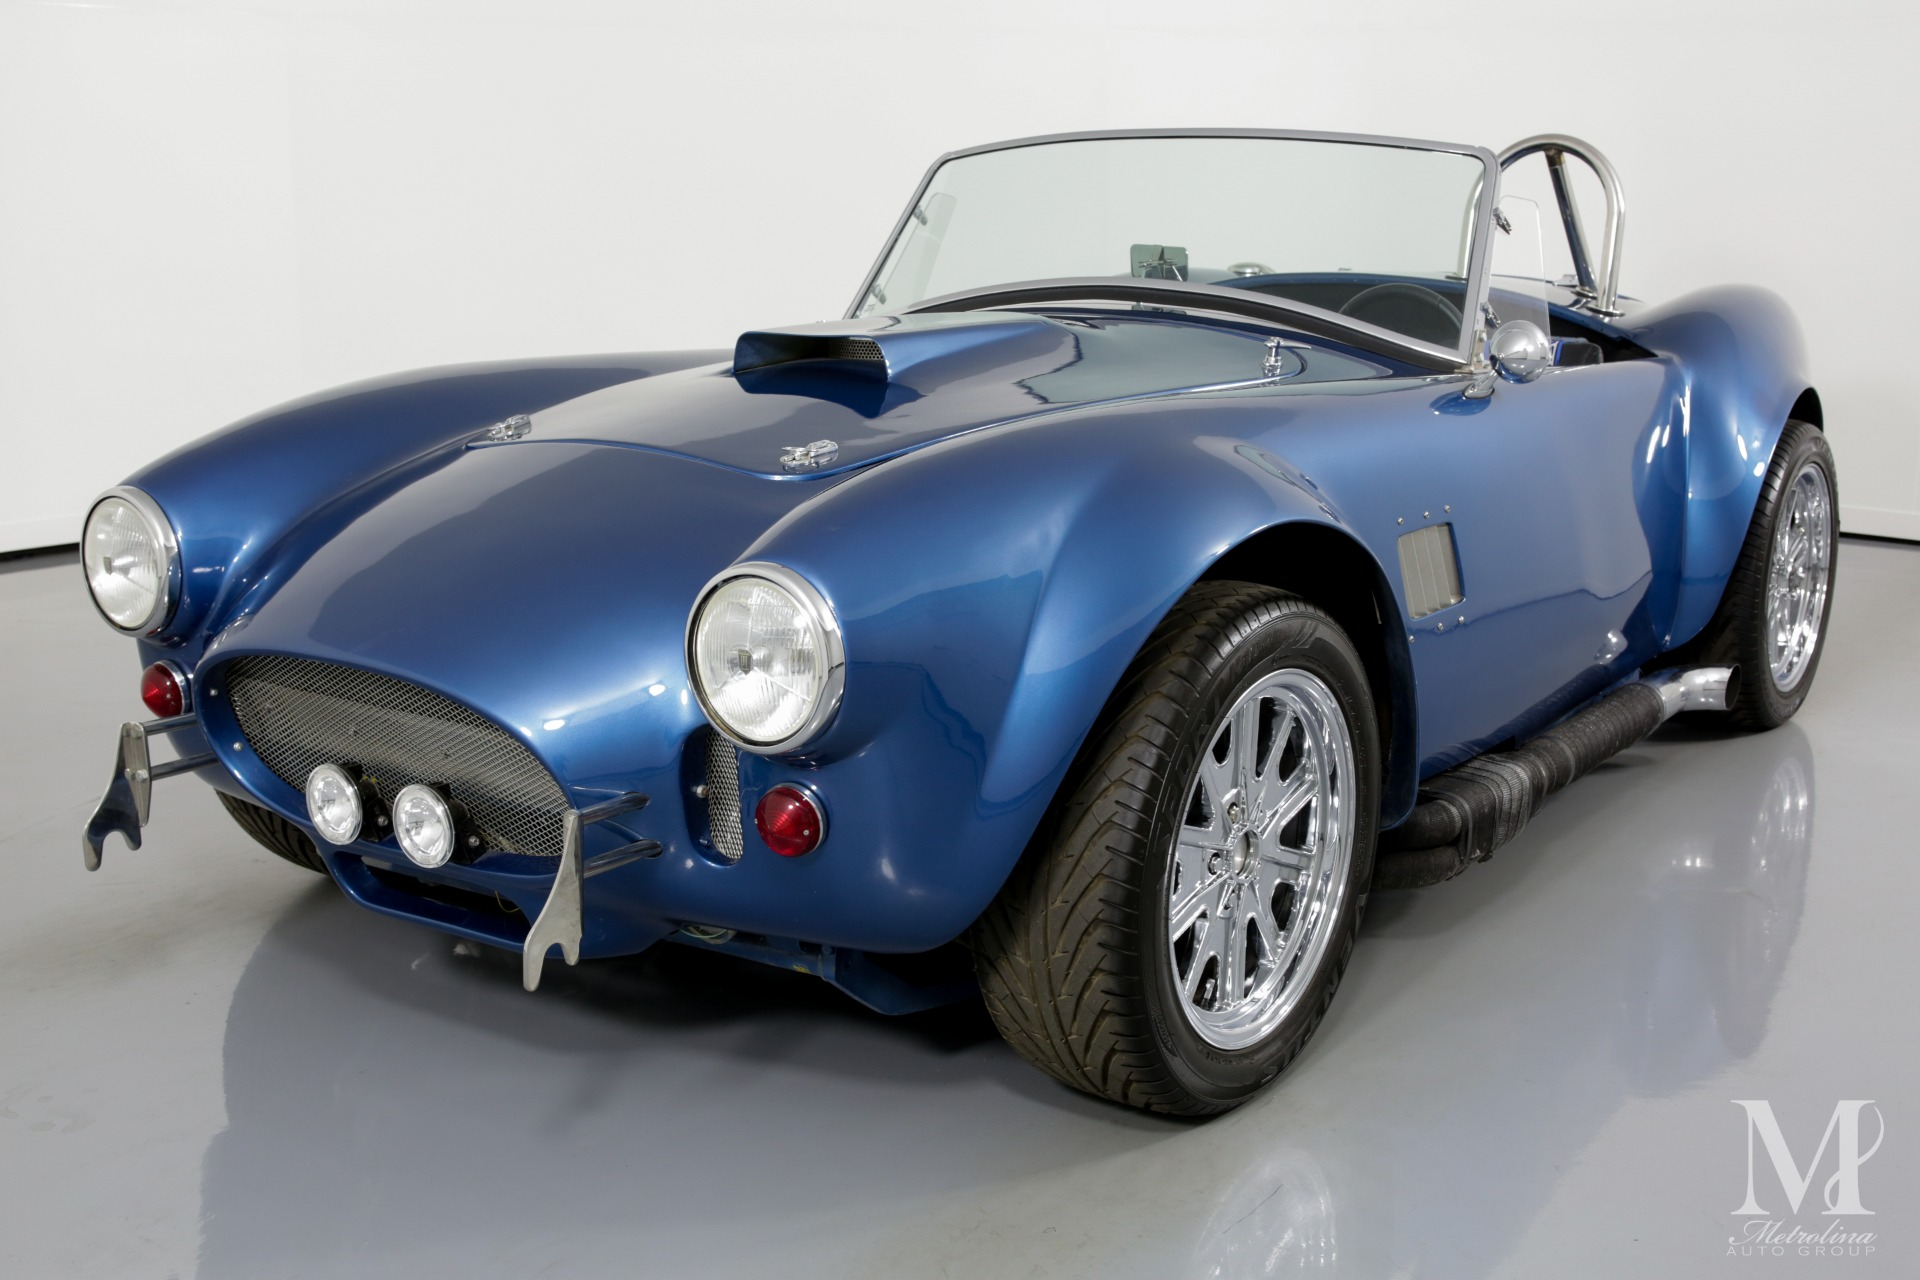 Used 1965 Shelby Cobra KIT CAR for sale $29,996 at Metrolina Auto Group in Charlotte NC 28217 - 4